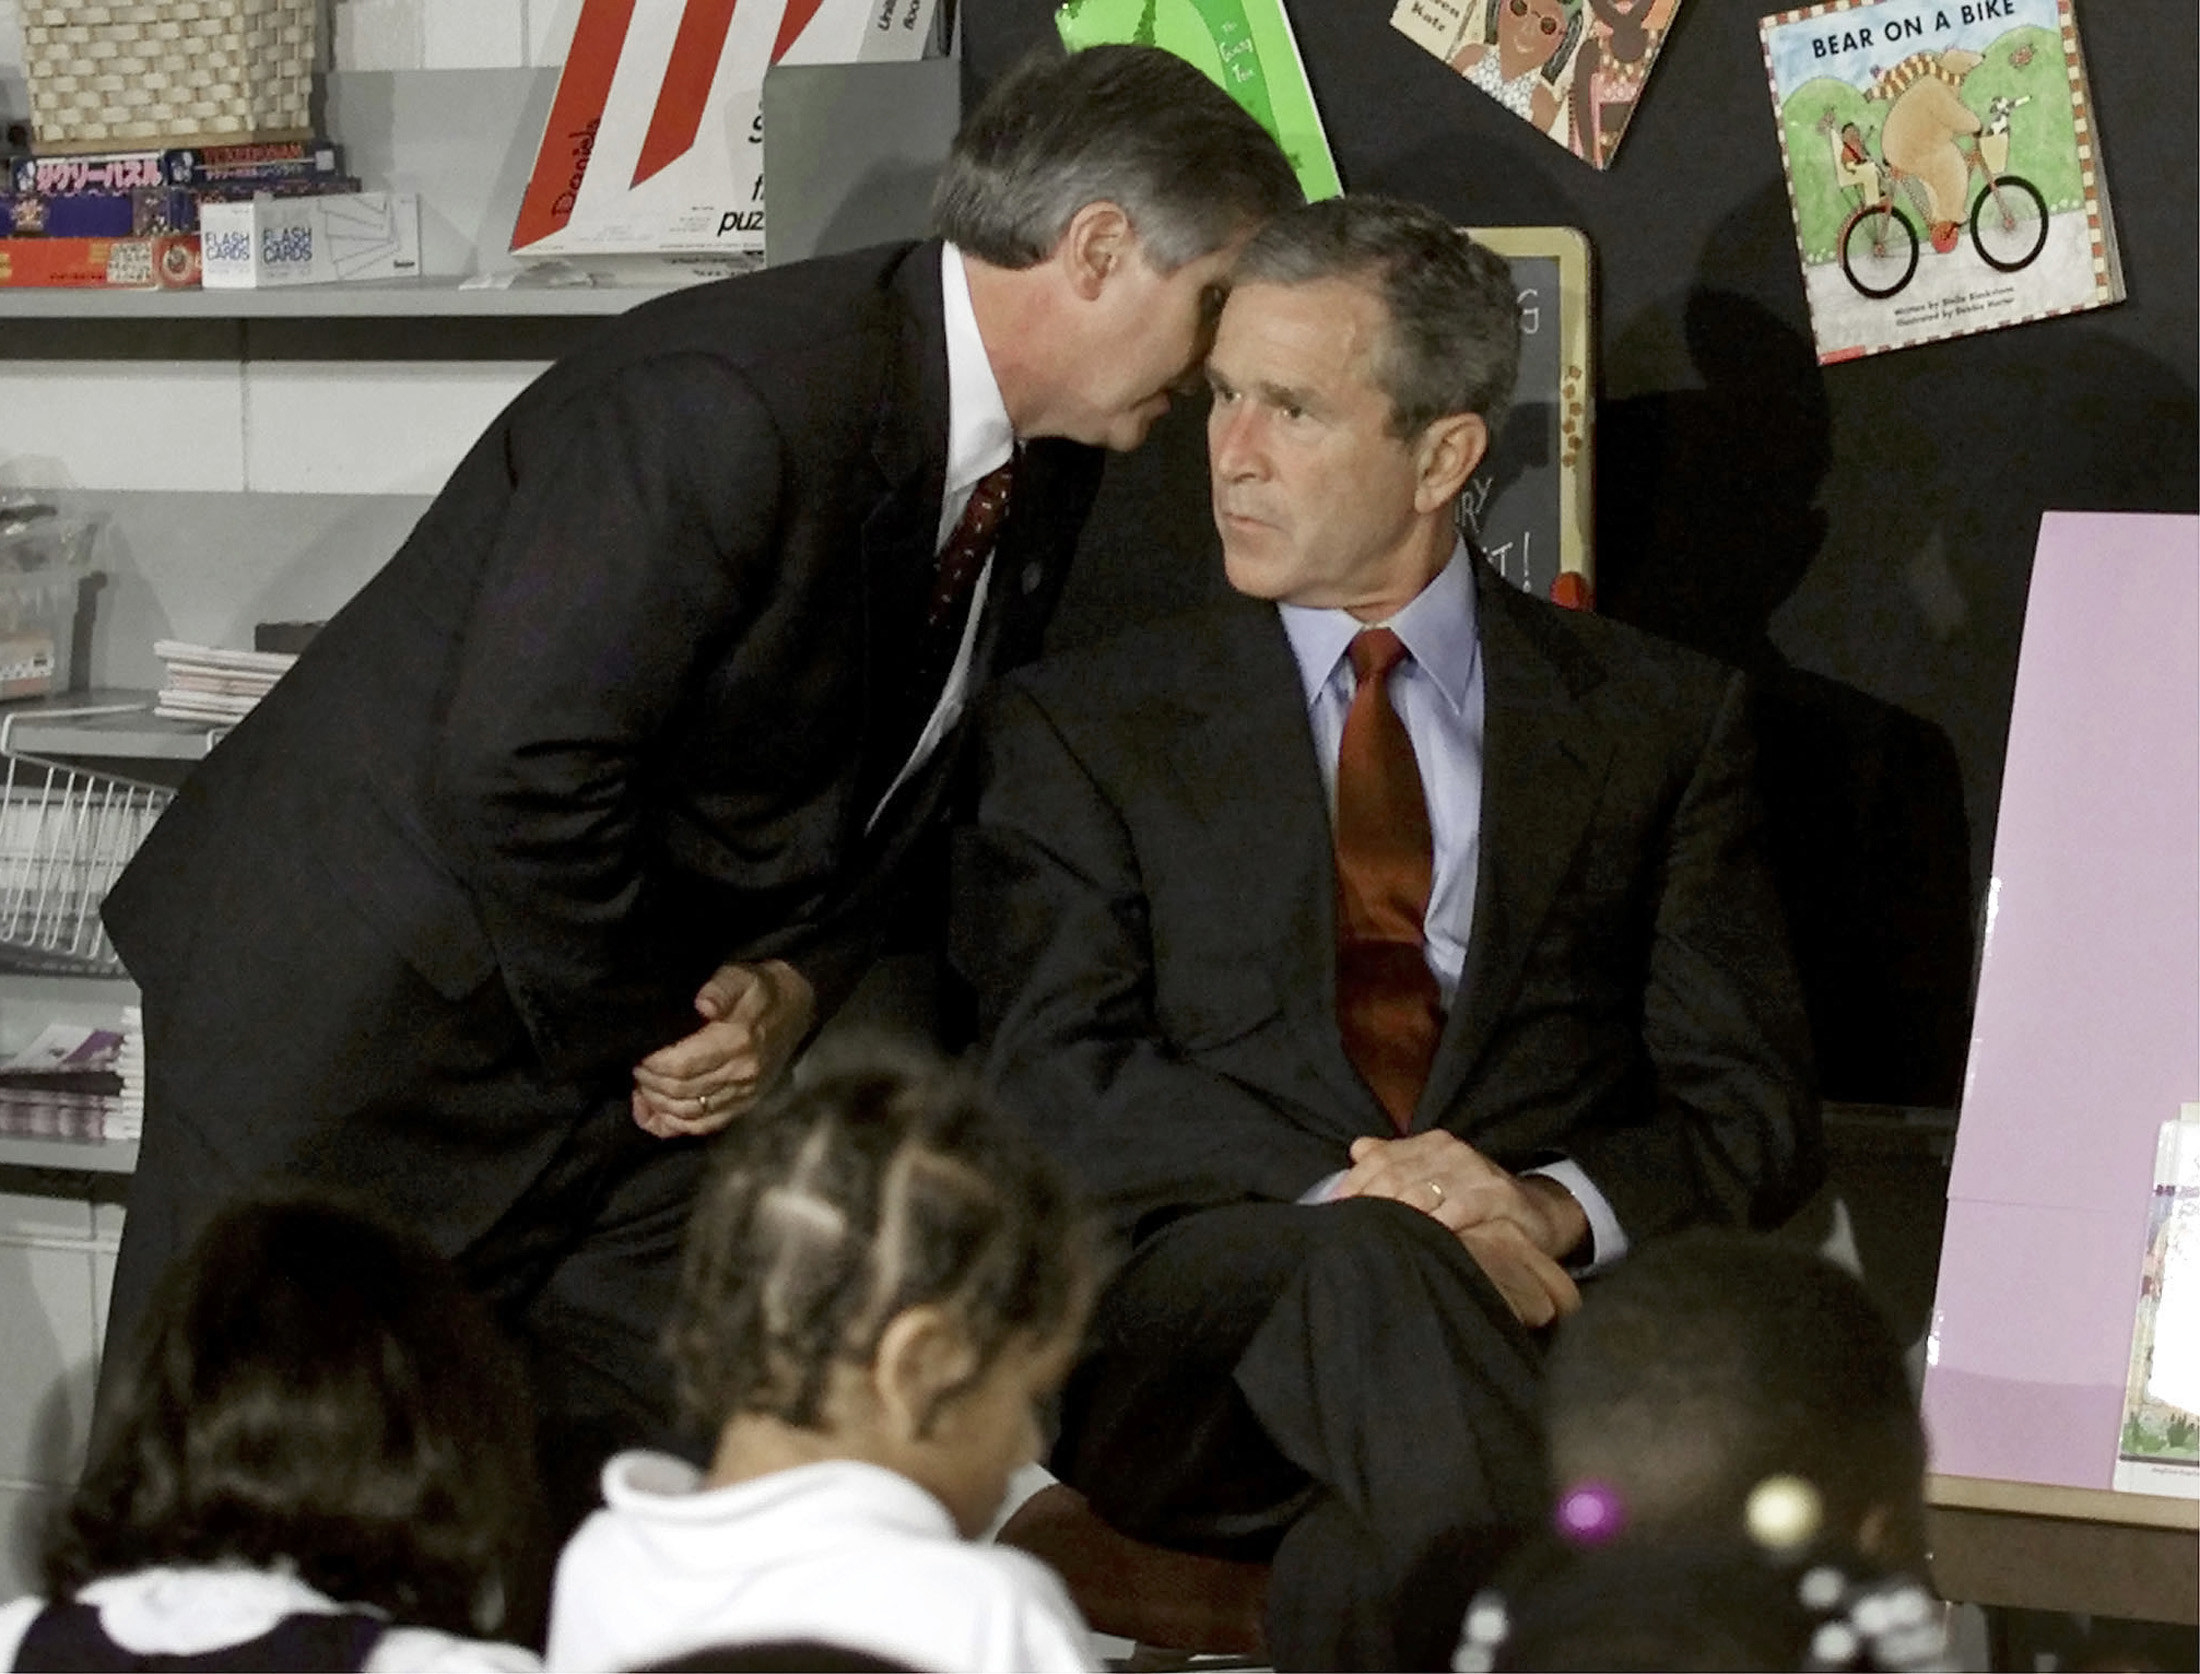 President George W. Bush looking very serious while another man in a suit whispers in his ear in a children's classroom